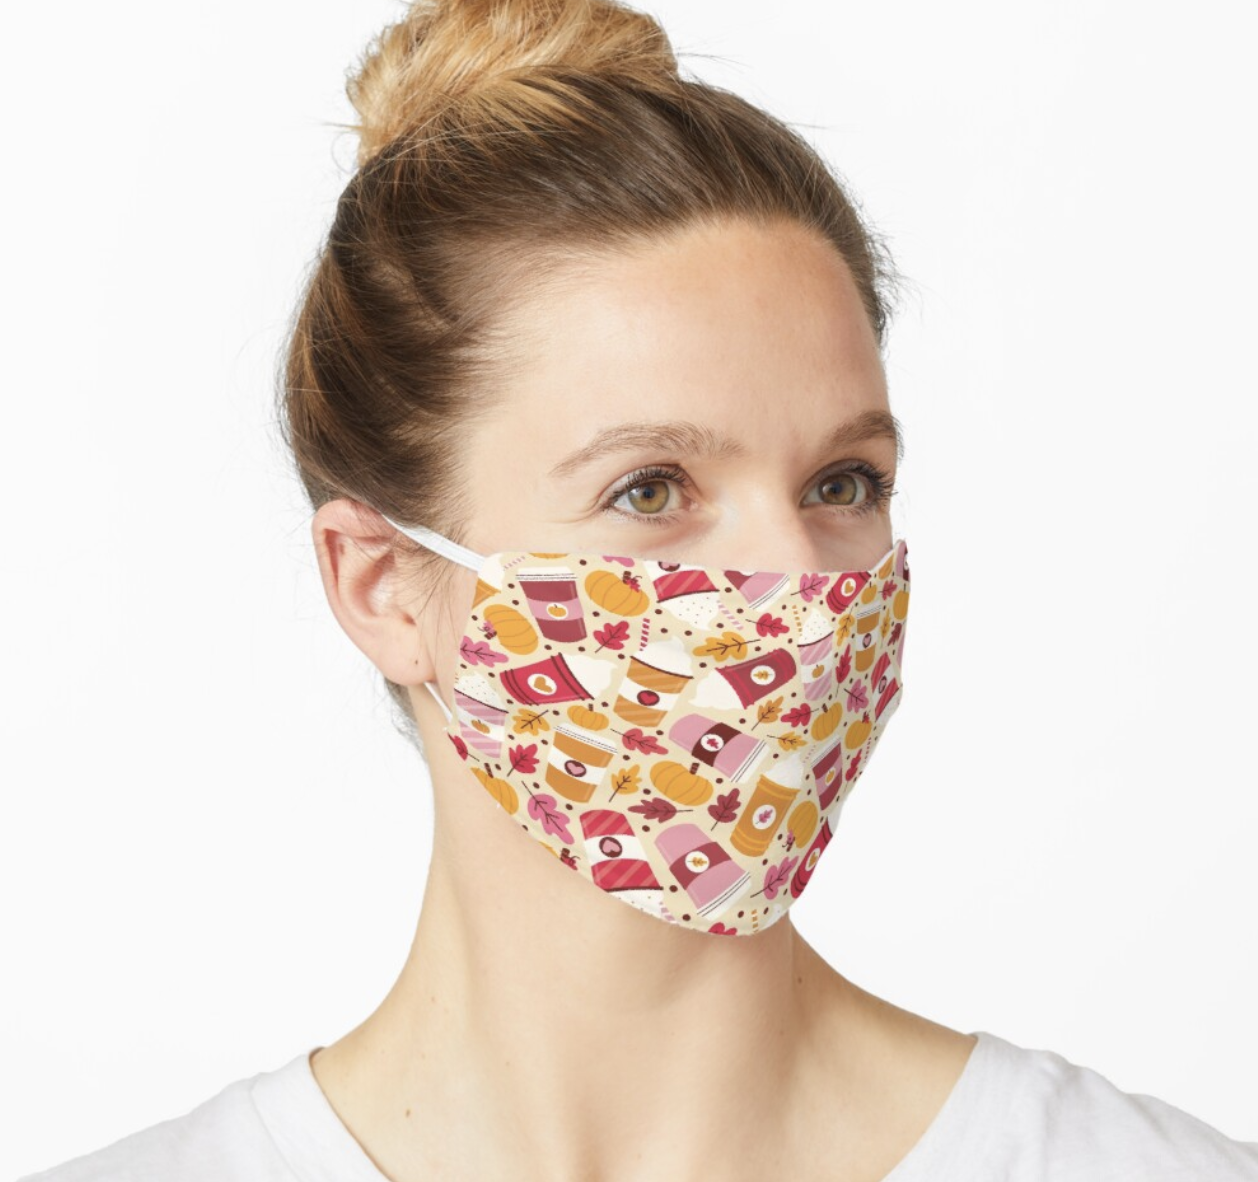 Model in a face mask with cartoon coffee cups, leaves, and pumpkins on it